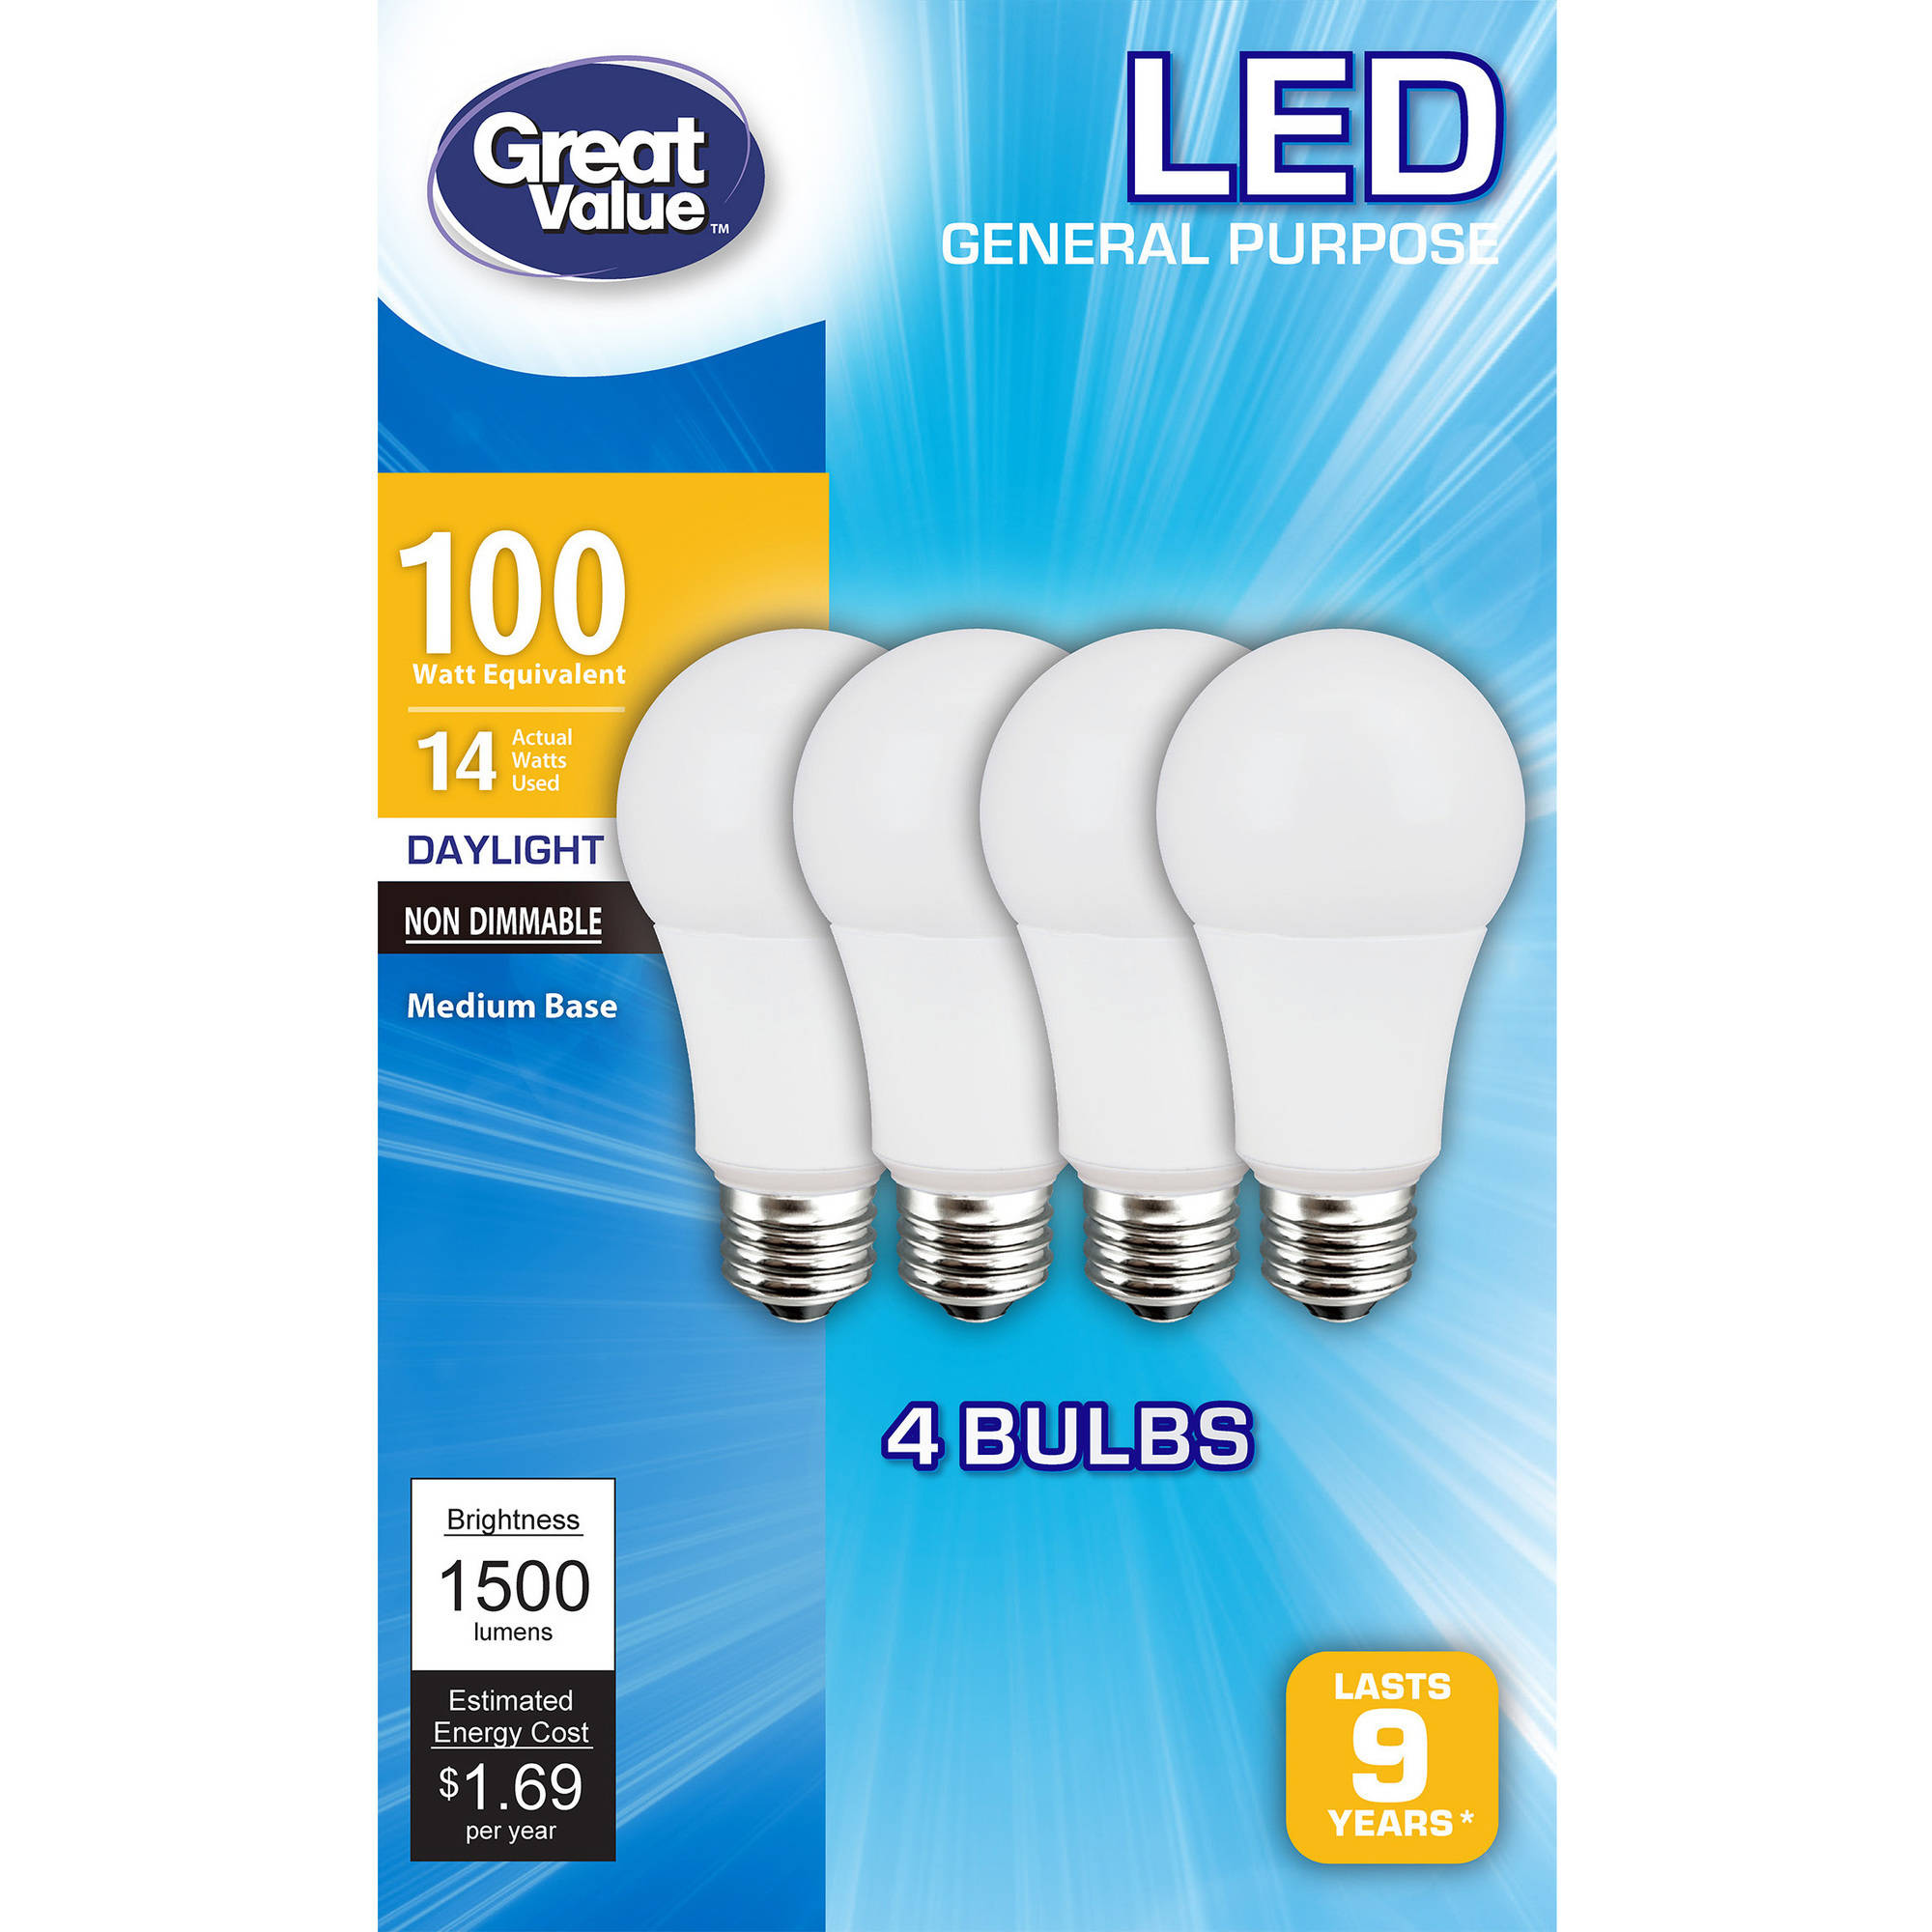 (8 pack) Great Value LED Light Bulbs 14W (100W Equivalent), Daylight, 2 packs of 4